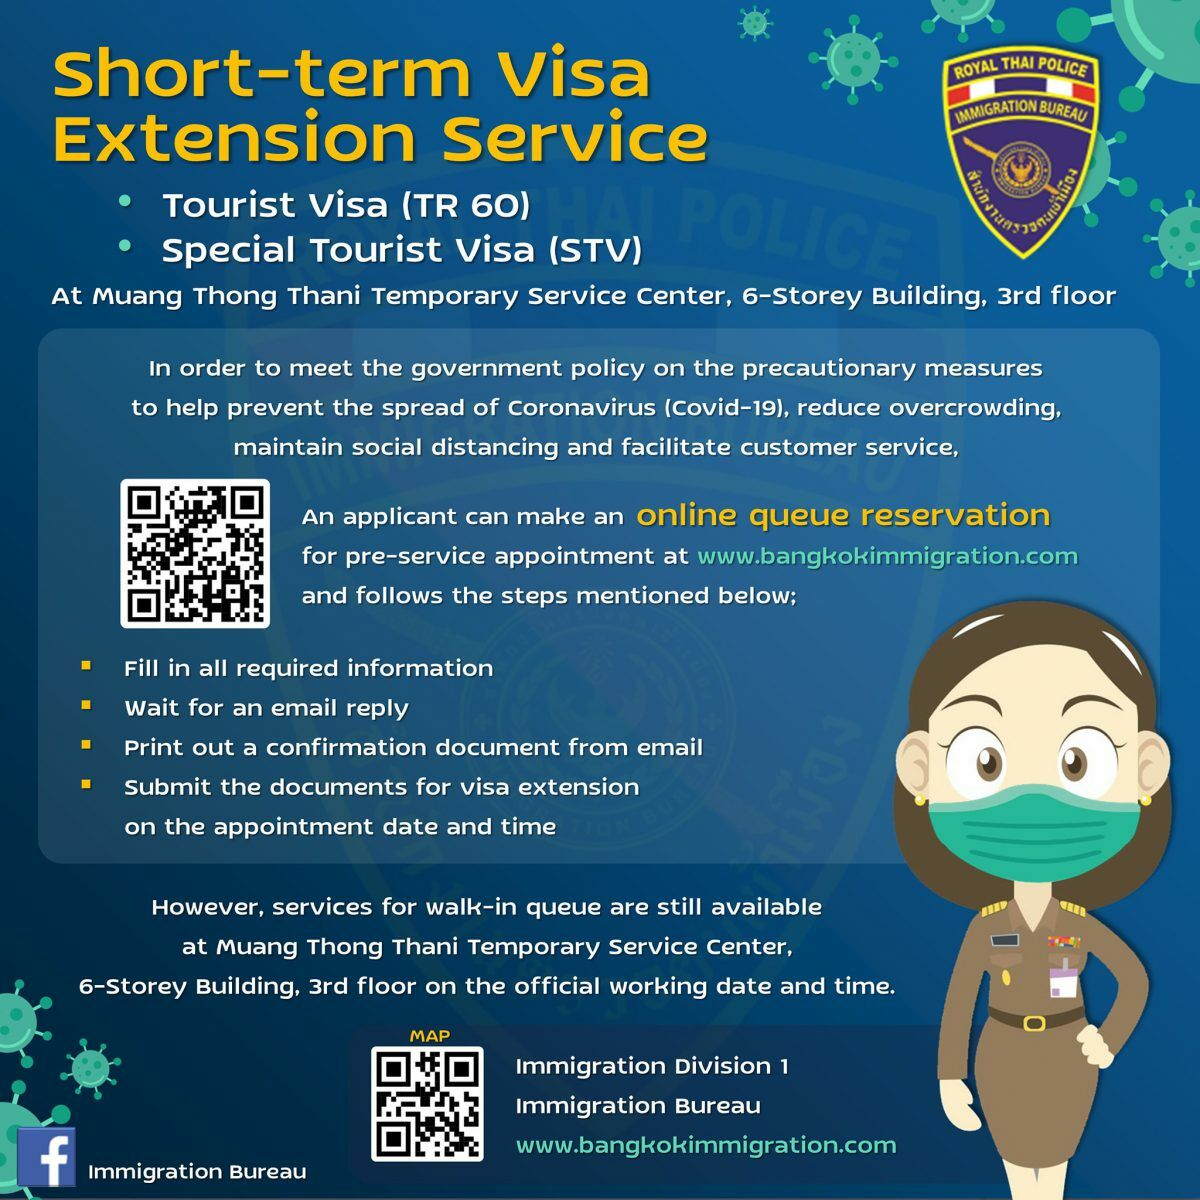 Make an appointment online for tourist visa extensions - Thai Immigration   News by Thaiger